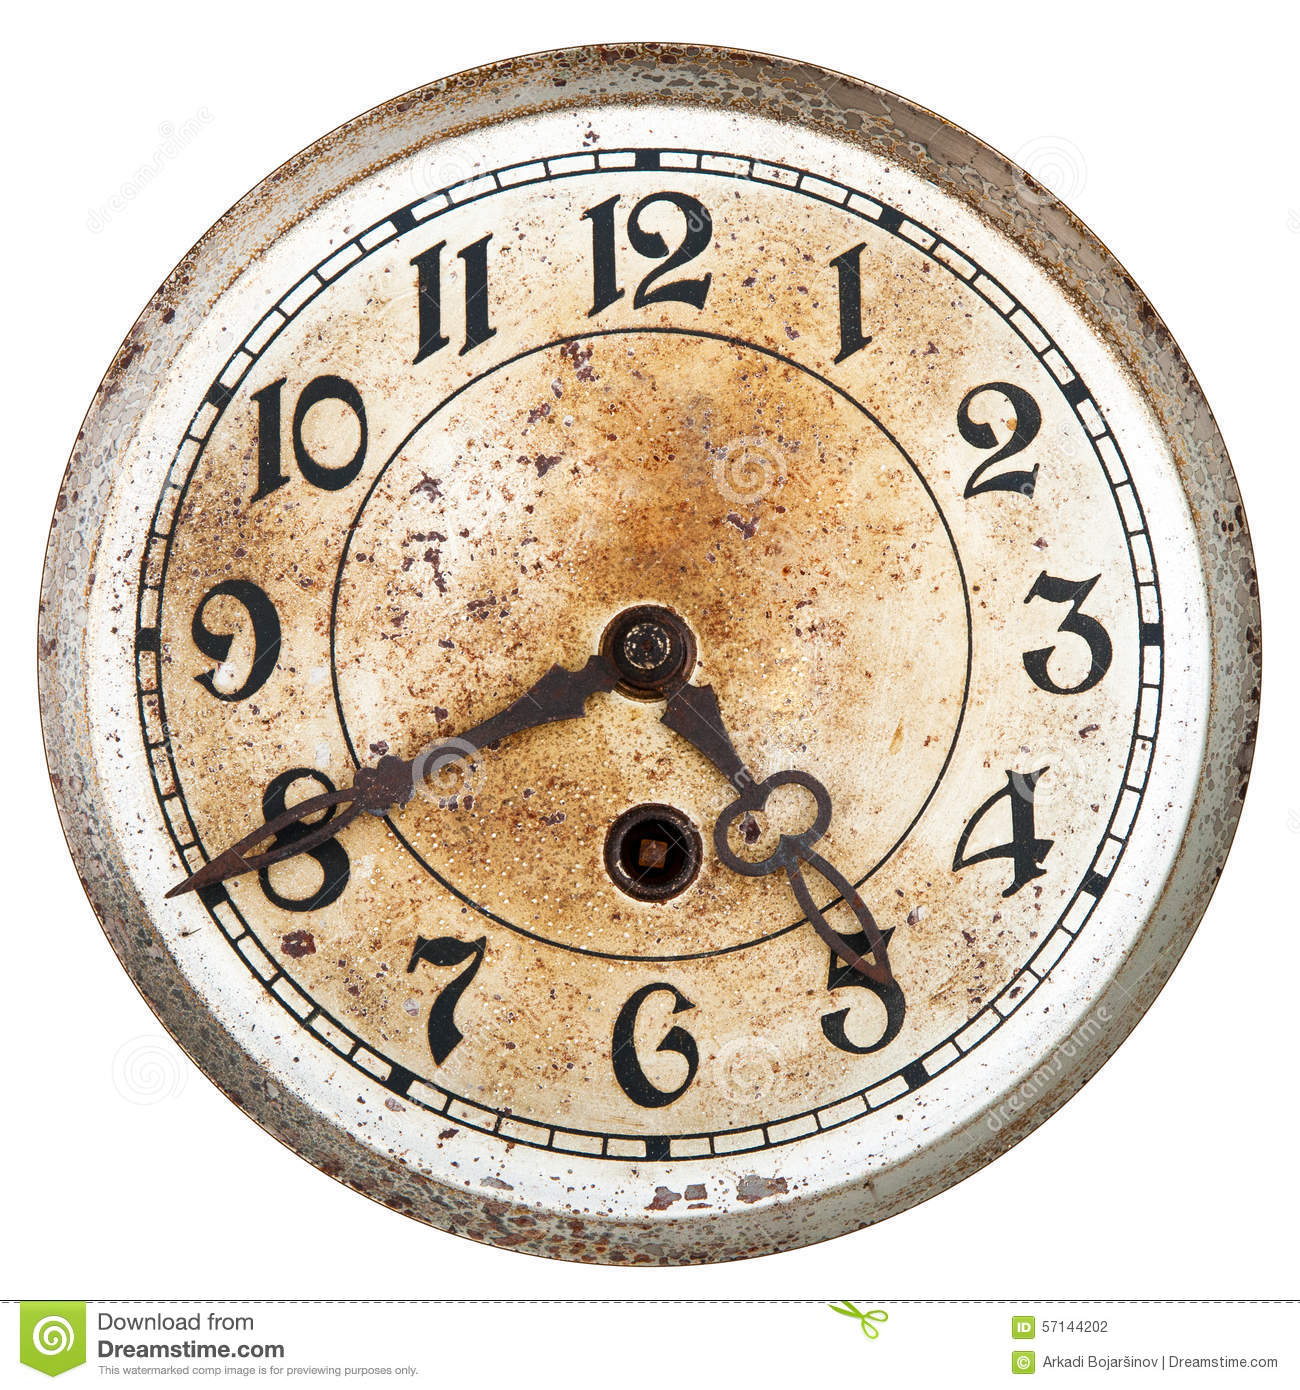 Paintings On Clock Faces